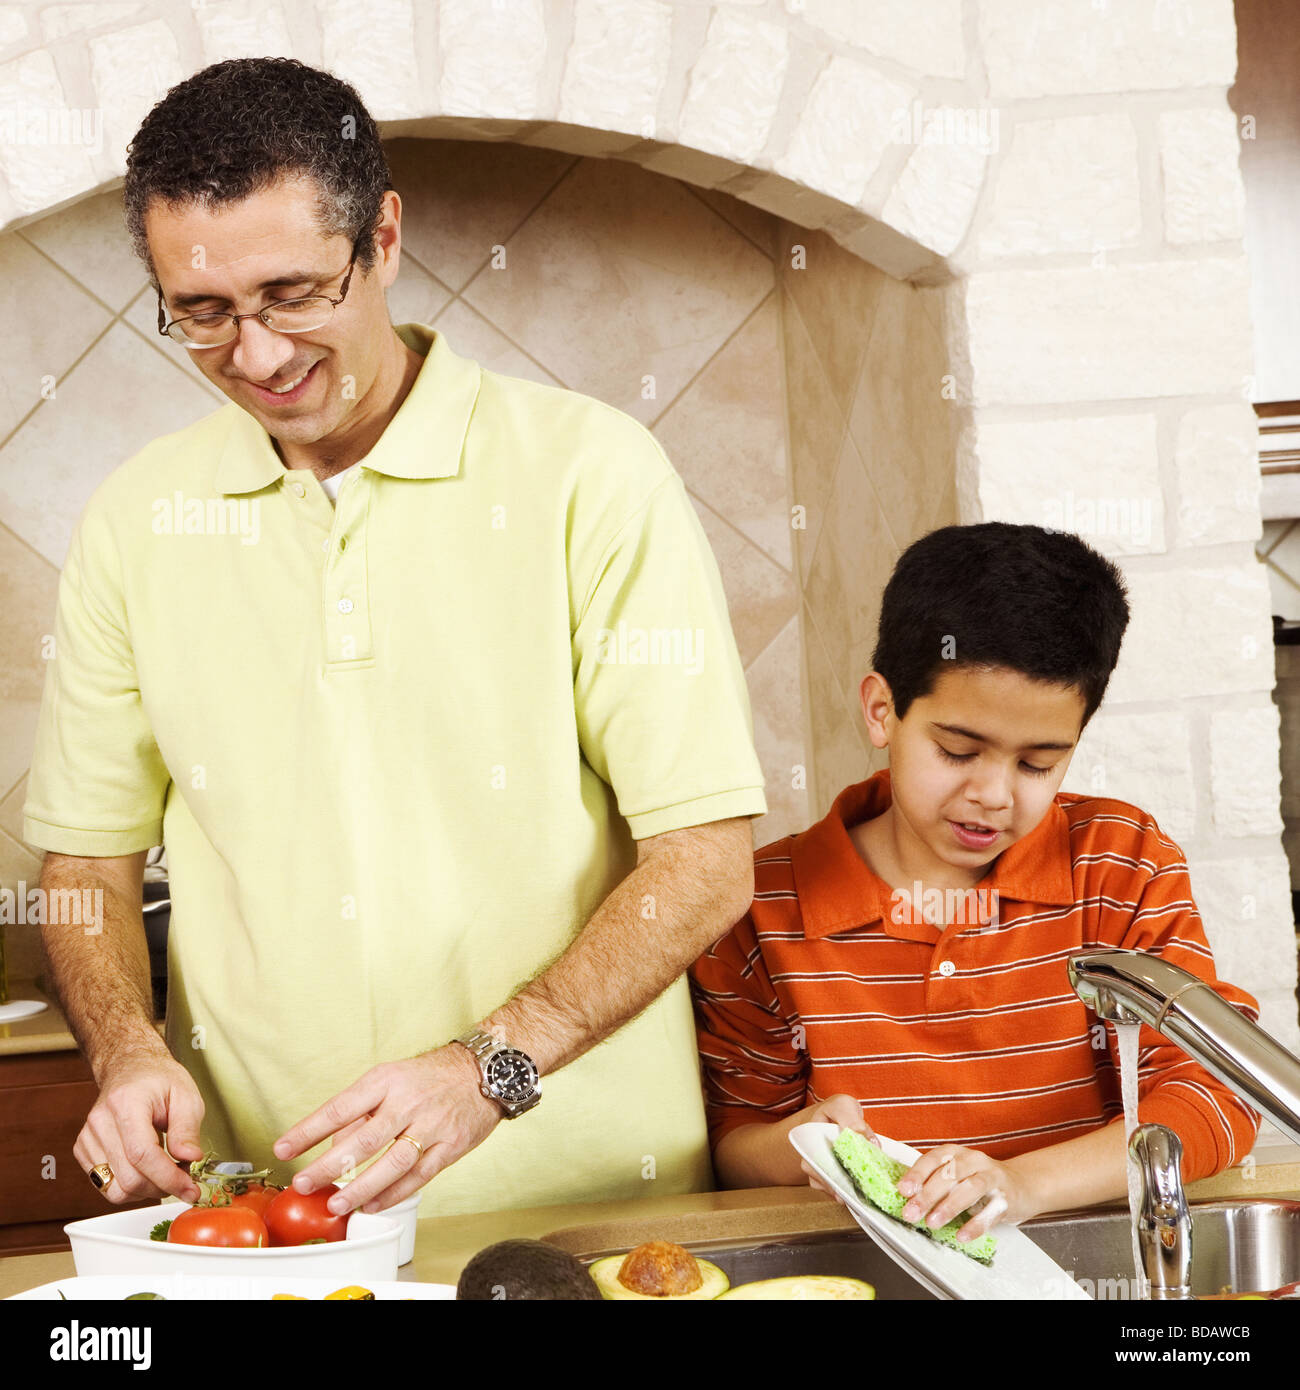 Boy working in a kitchen with his father and grandfather - Stock Image